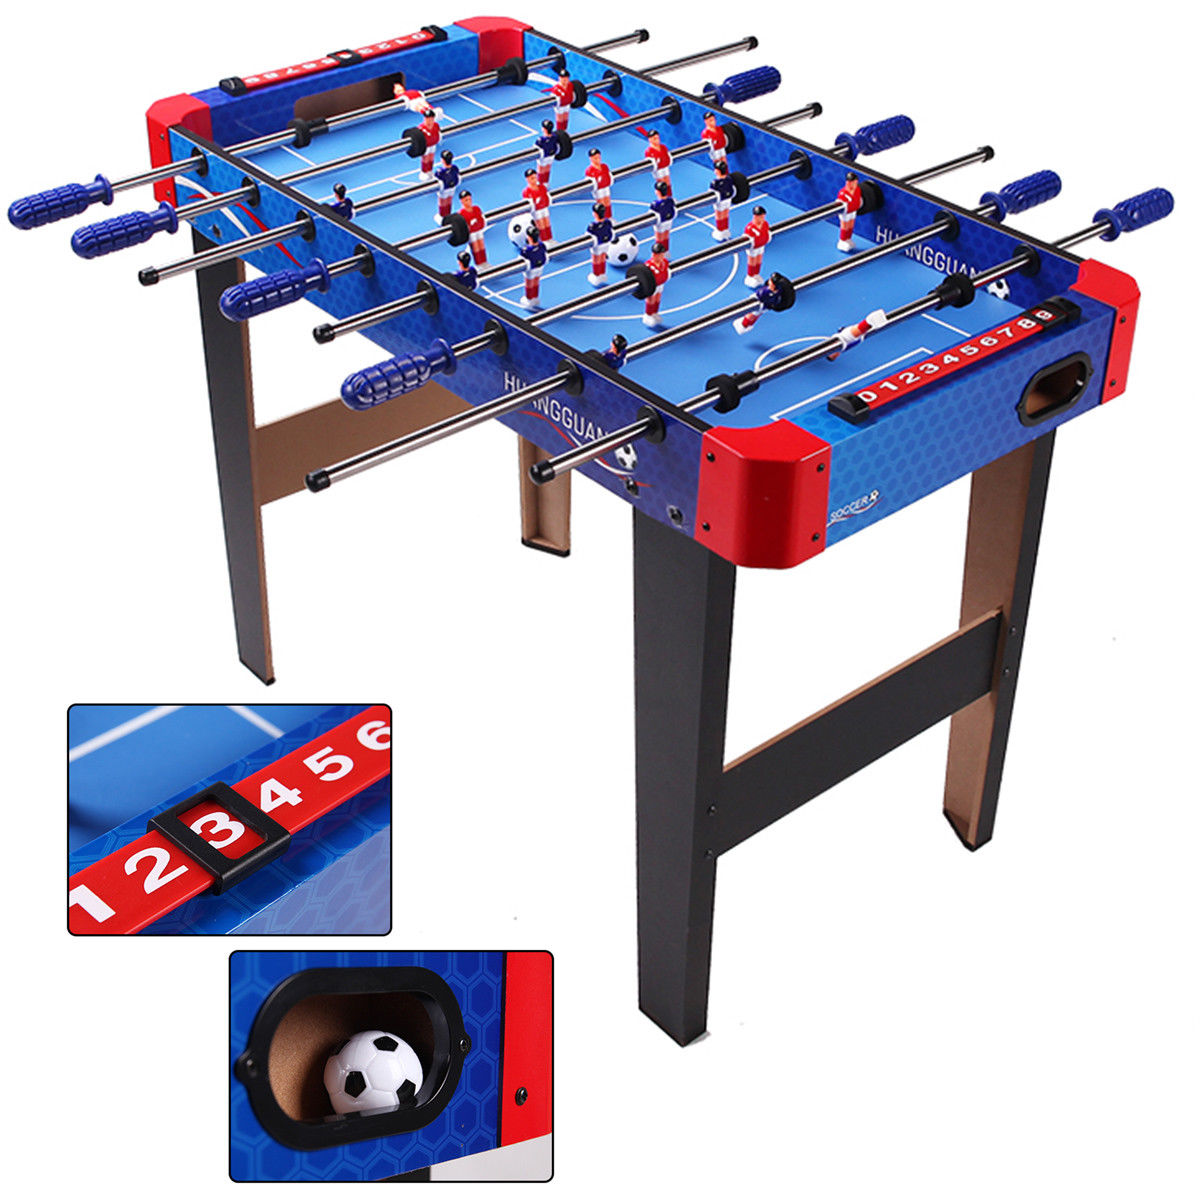 Costway 36'' Foosball Table Arcade Game Christmas Gift Soccer For Kids Indooor Outdoor by Costway